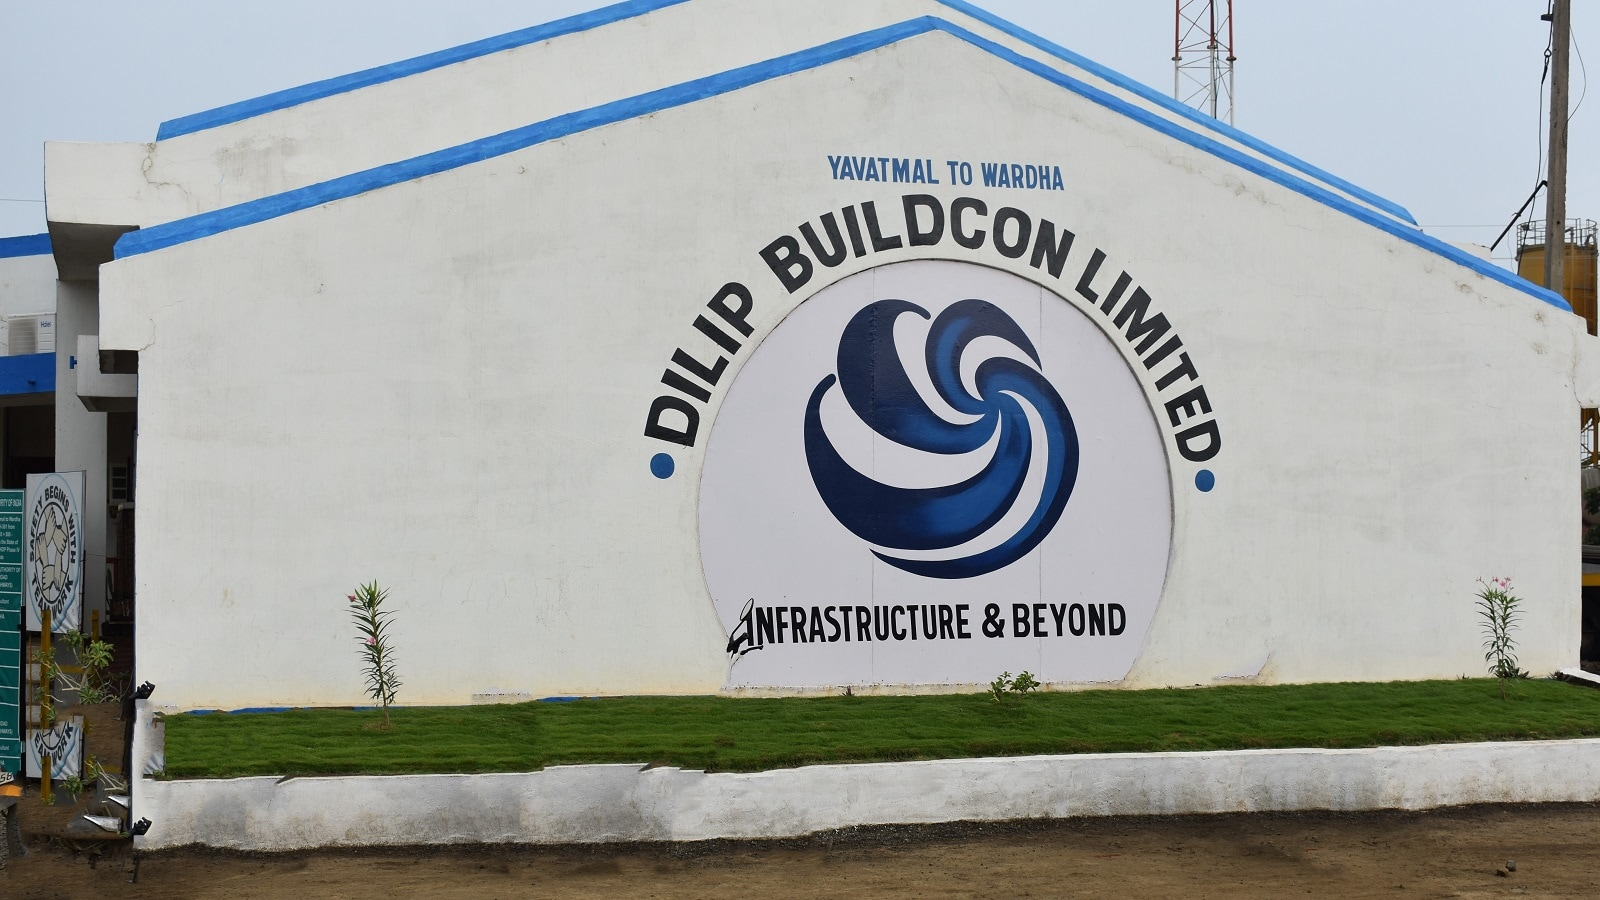 Dilip Buildcon: Q1 consolidated net profit fell 54.74 percent to Rs 100.27 crore. Total income for the quarter fell to Rs 2,450.27 crore from Rs 2,532.16 crore a year ago. (Image: Company)